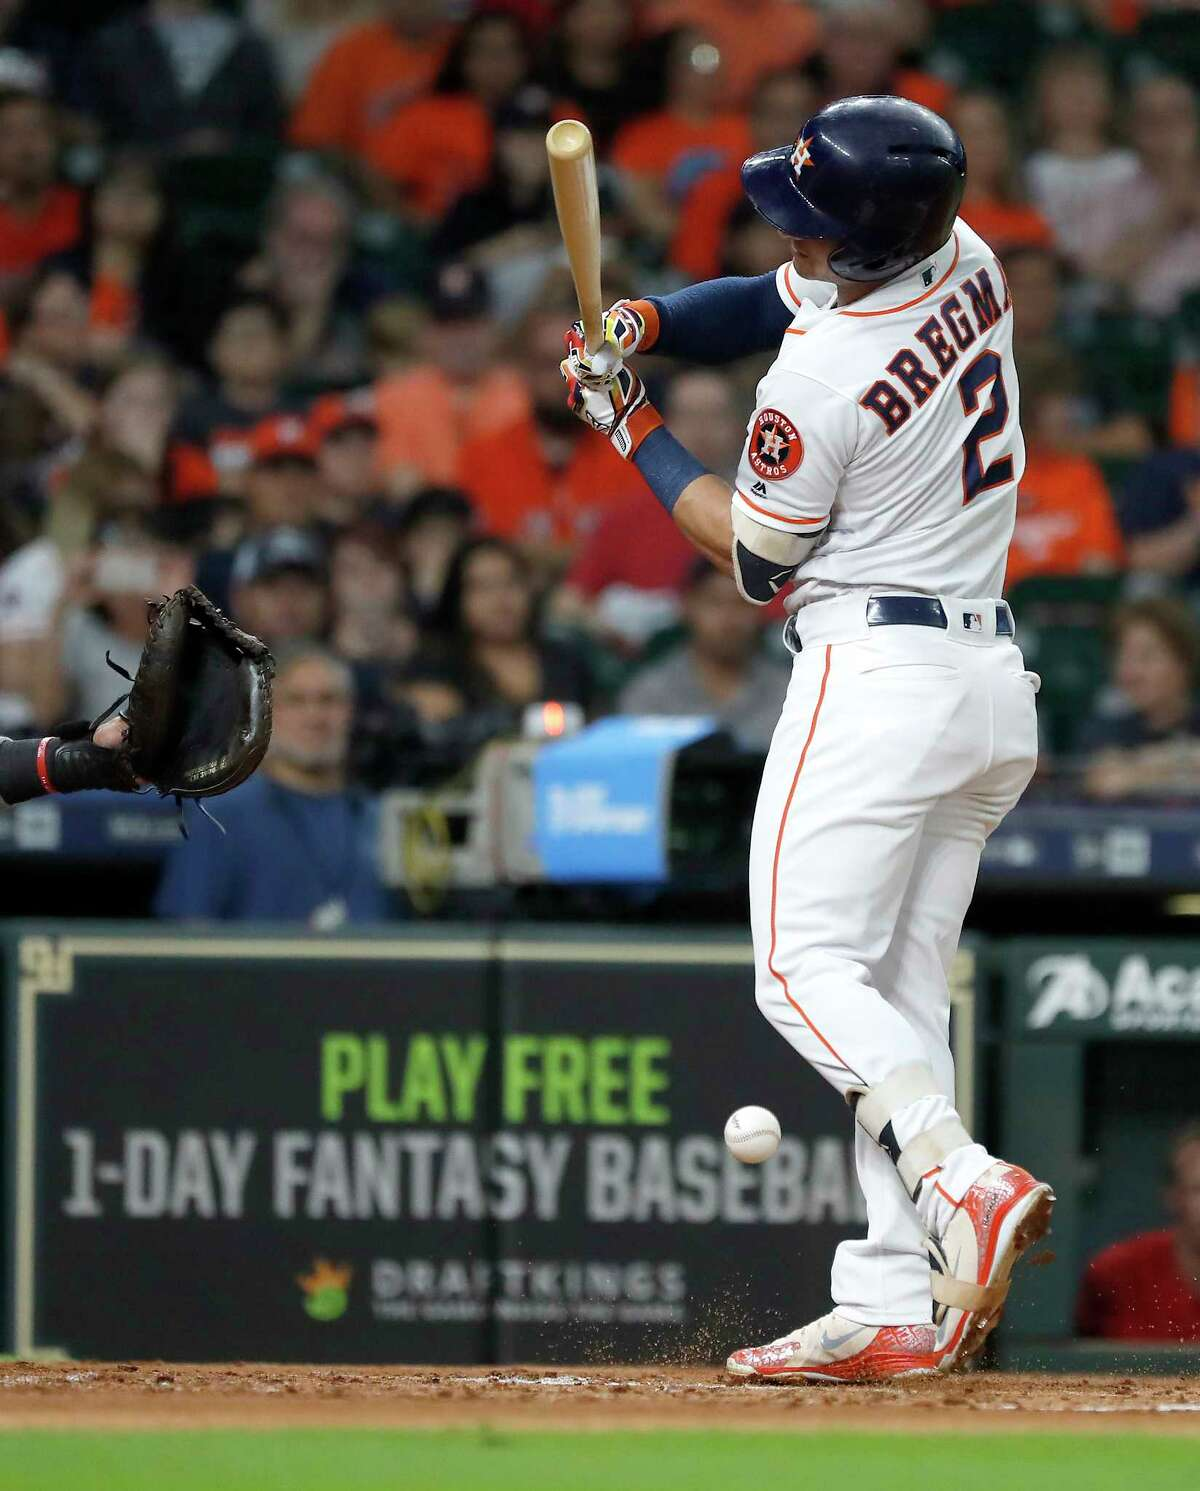 Houston Astros Alex Bregman (2) gets hit by a pitch during the first inning of an MLB baseball game at Minute Maid Park, Saturday, September 22, 2018, in Houston.